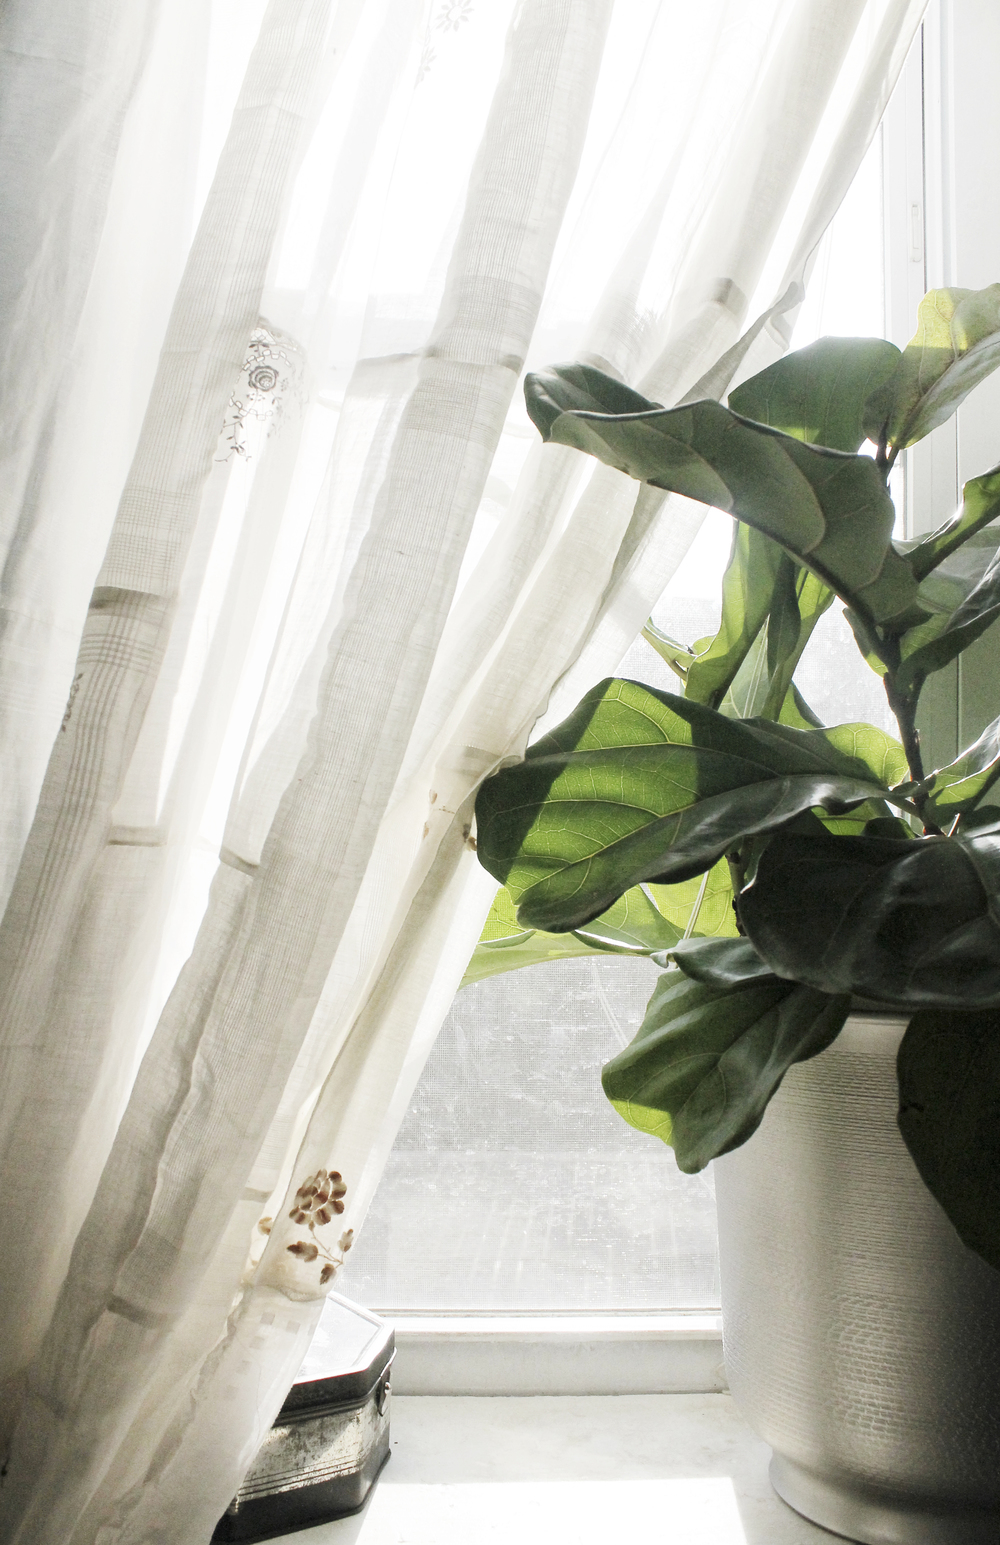 houseplants on windowsills